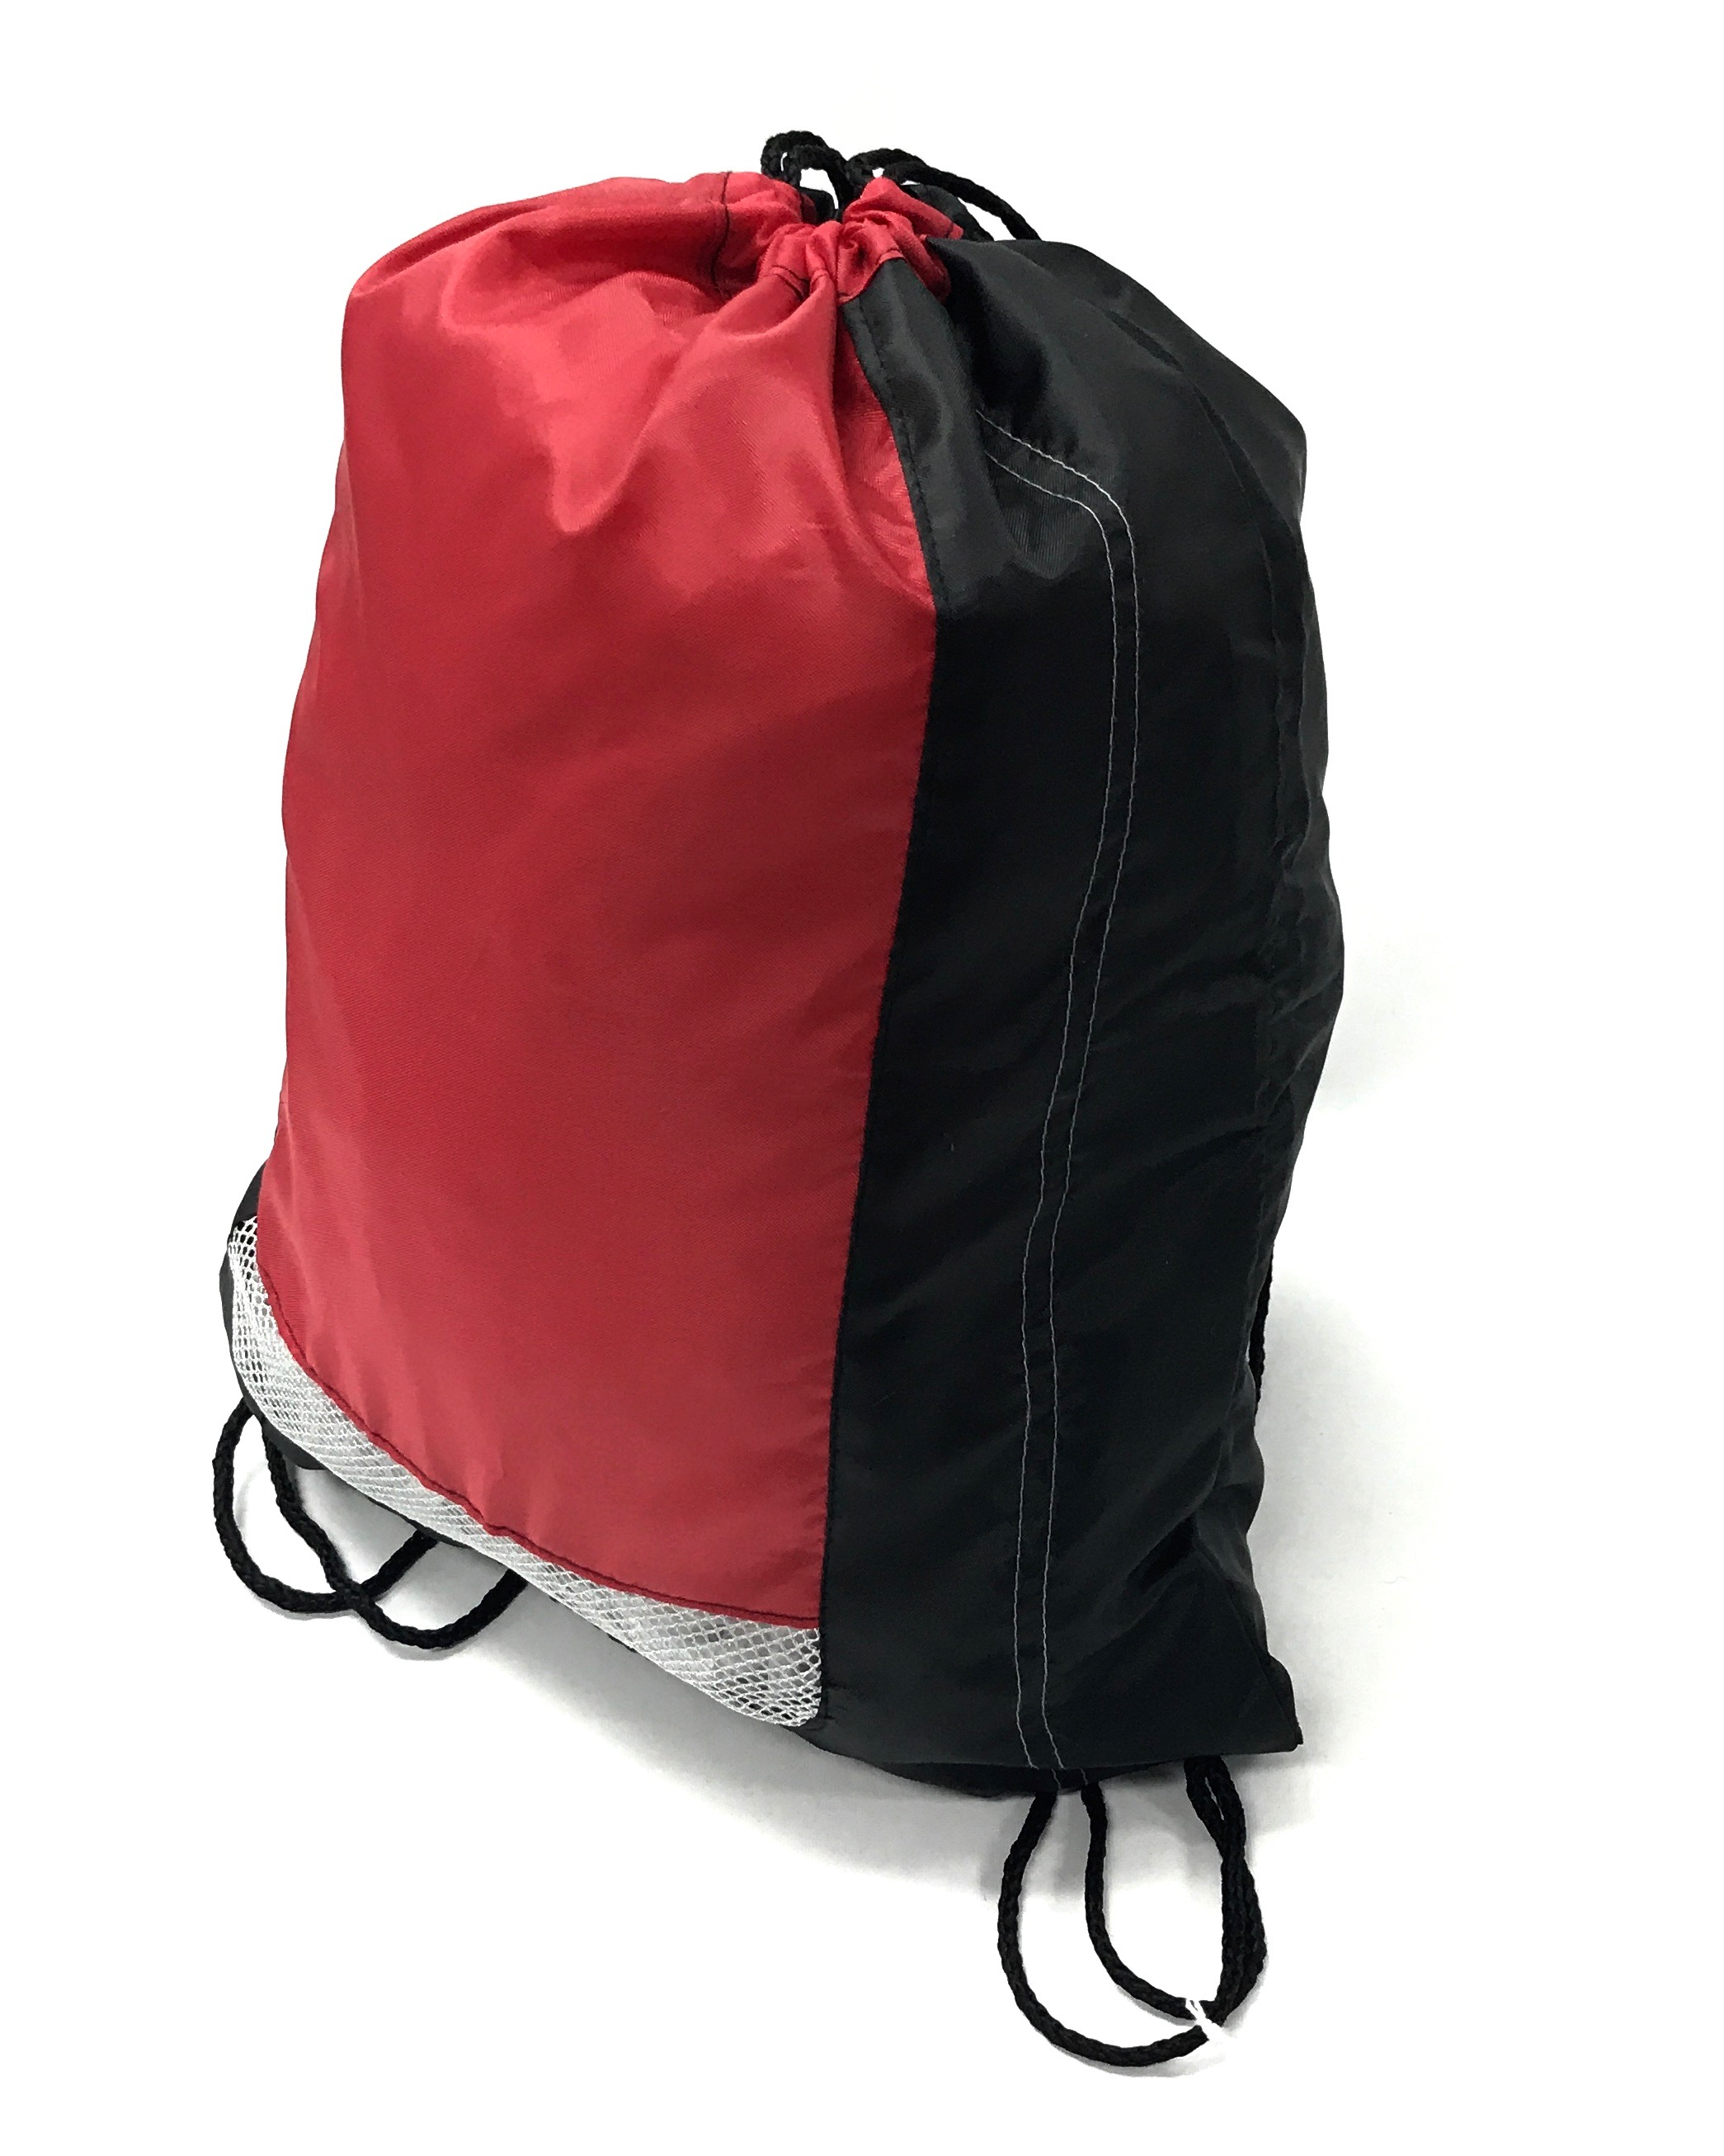 (120905) Linear Cinch Pack - Red